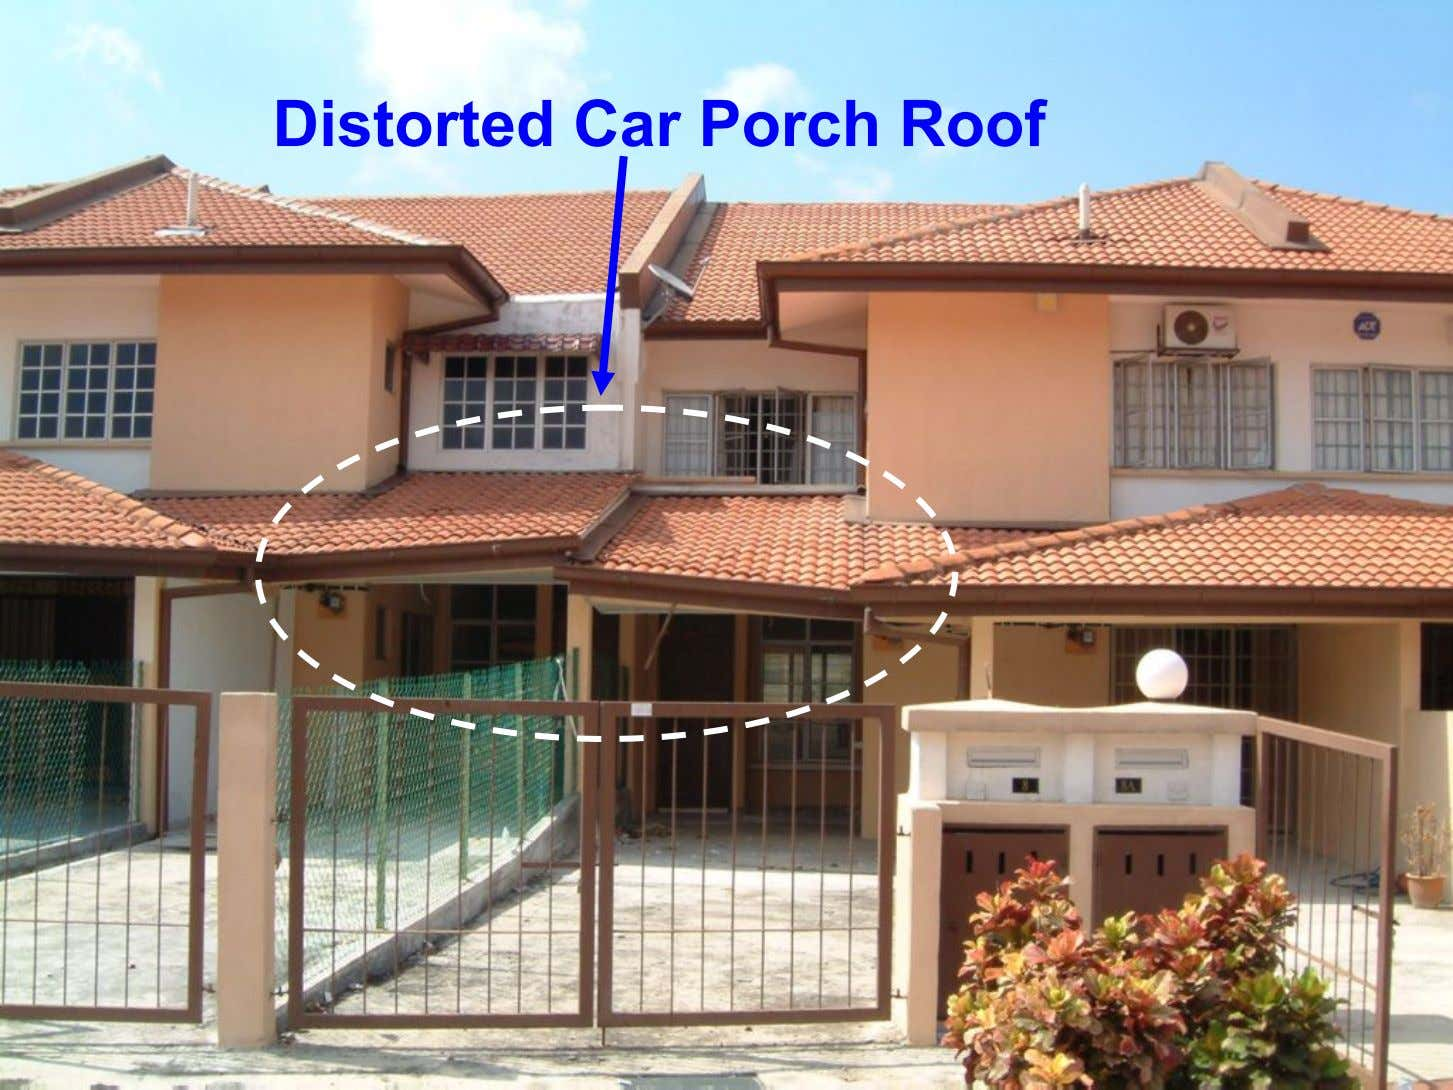 Distorted Car Porch Roof